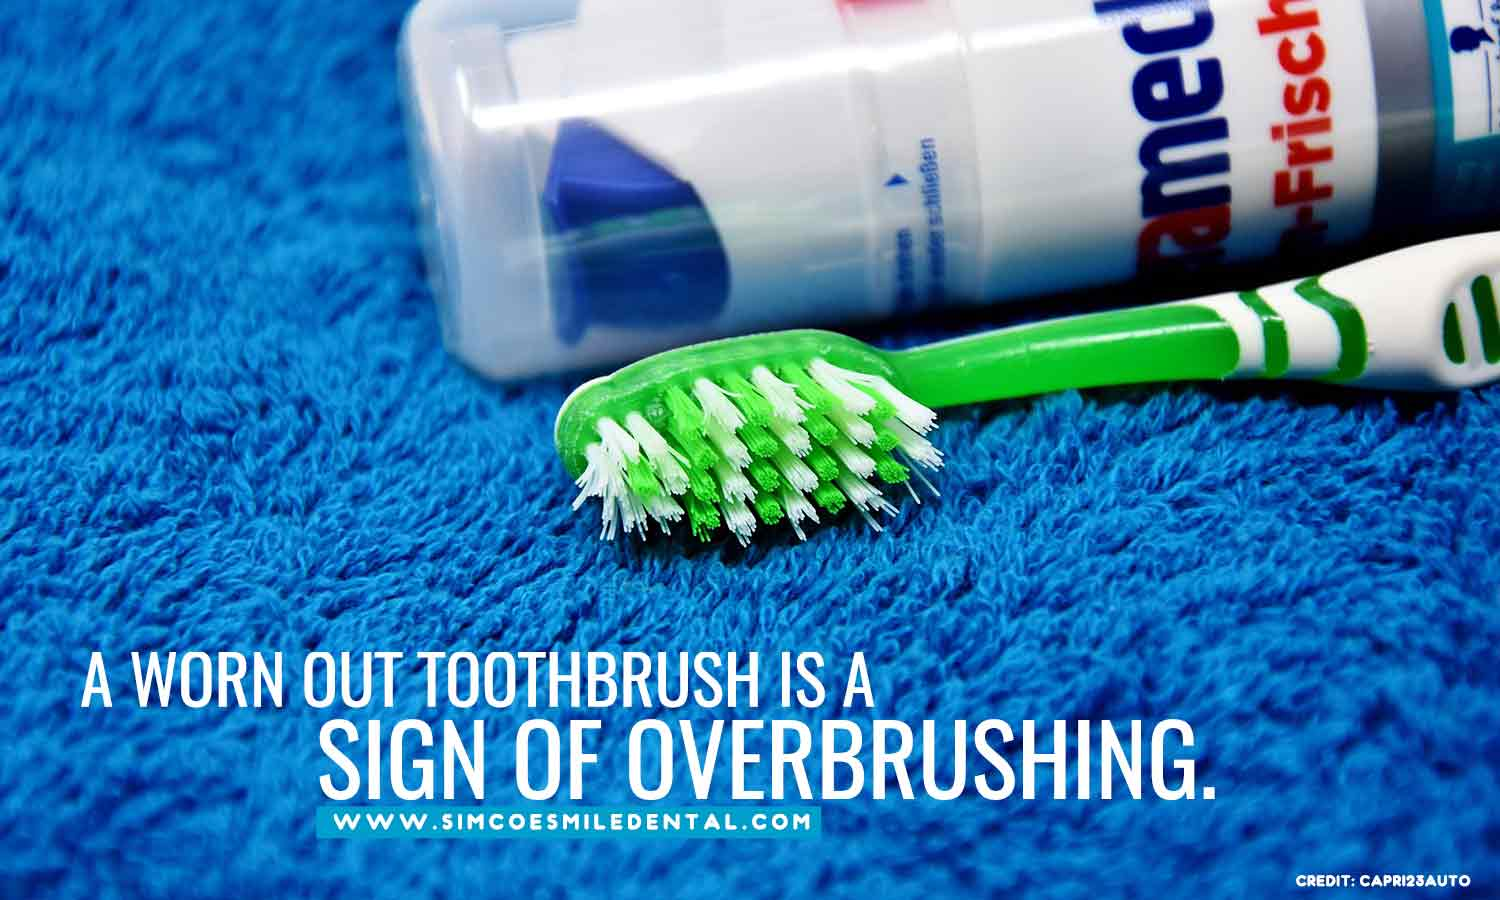 A-worn-out-toothbrush-is-a-sign-of-overbrushing Overbrushing And Its Effects On Your Teeth